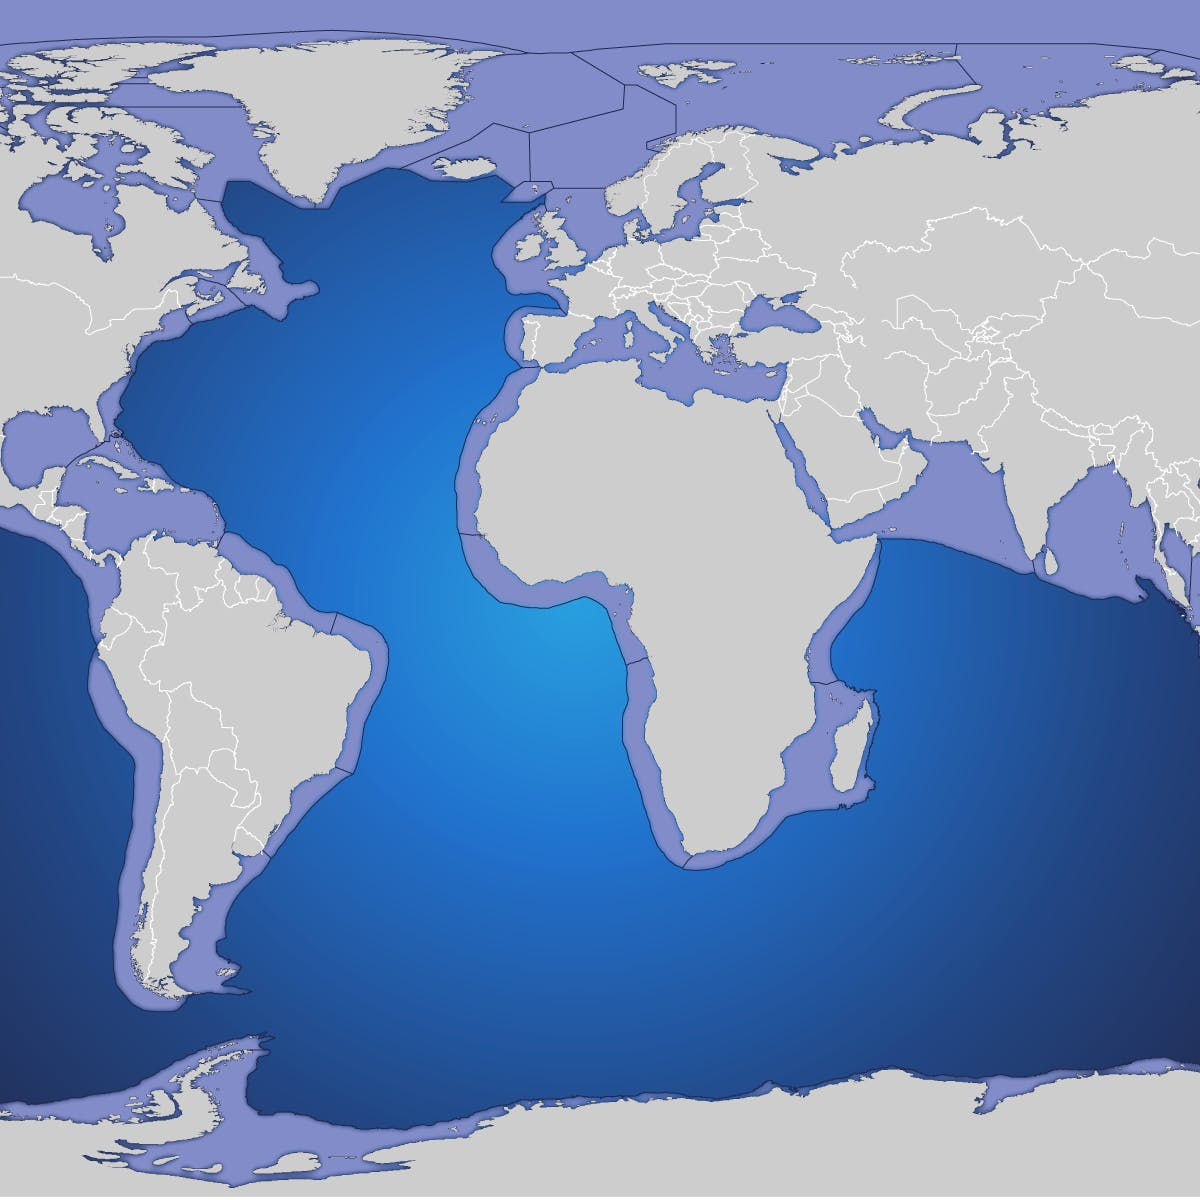 Large Marine Ecosystems: Assessment and Management